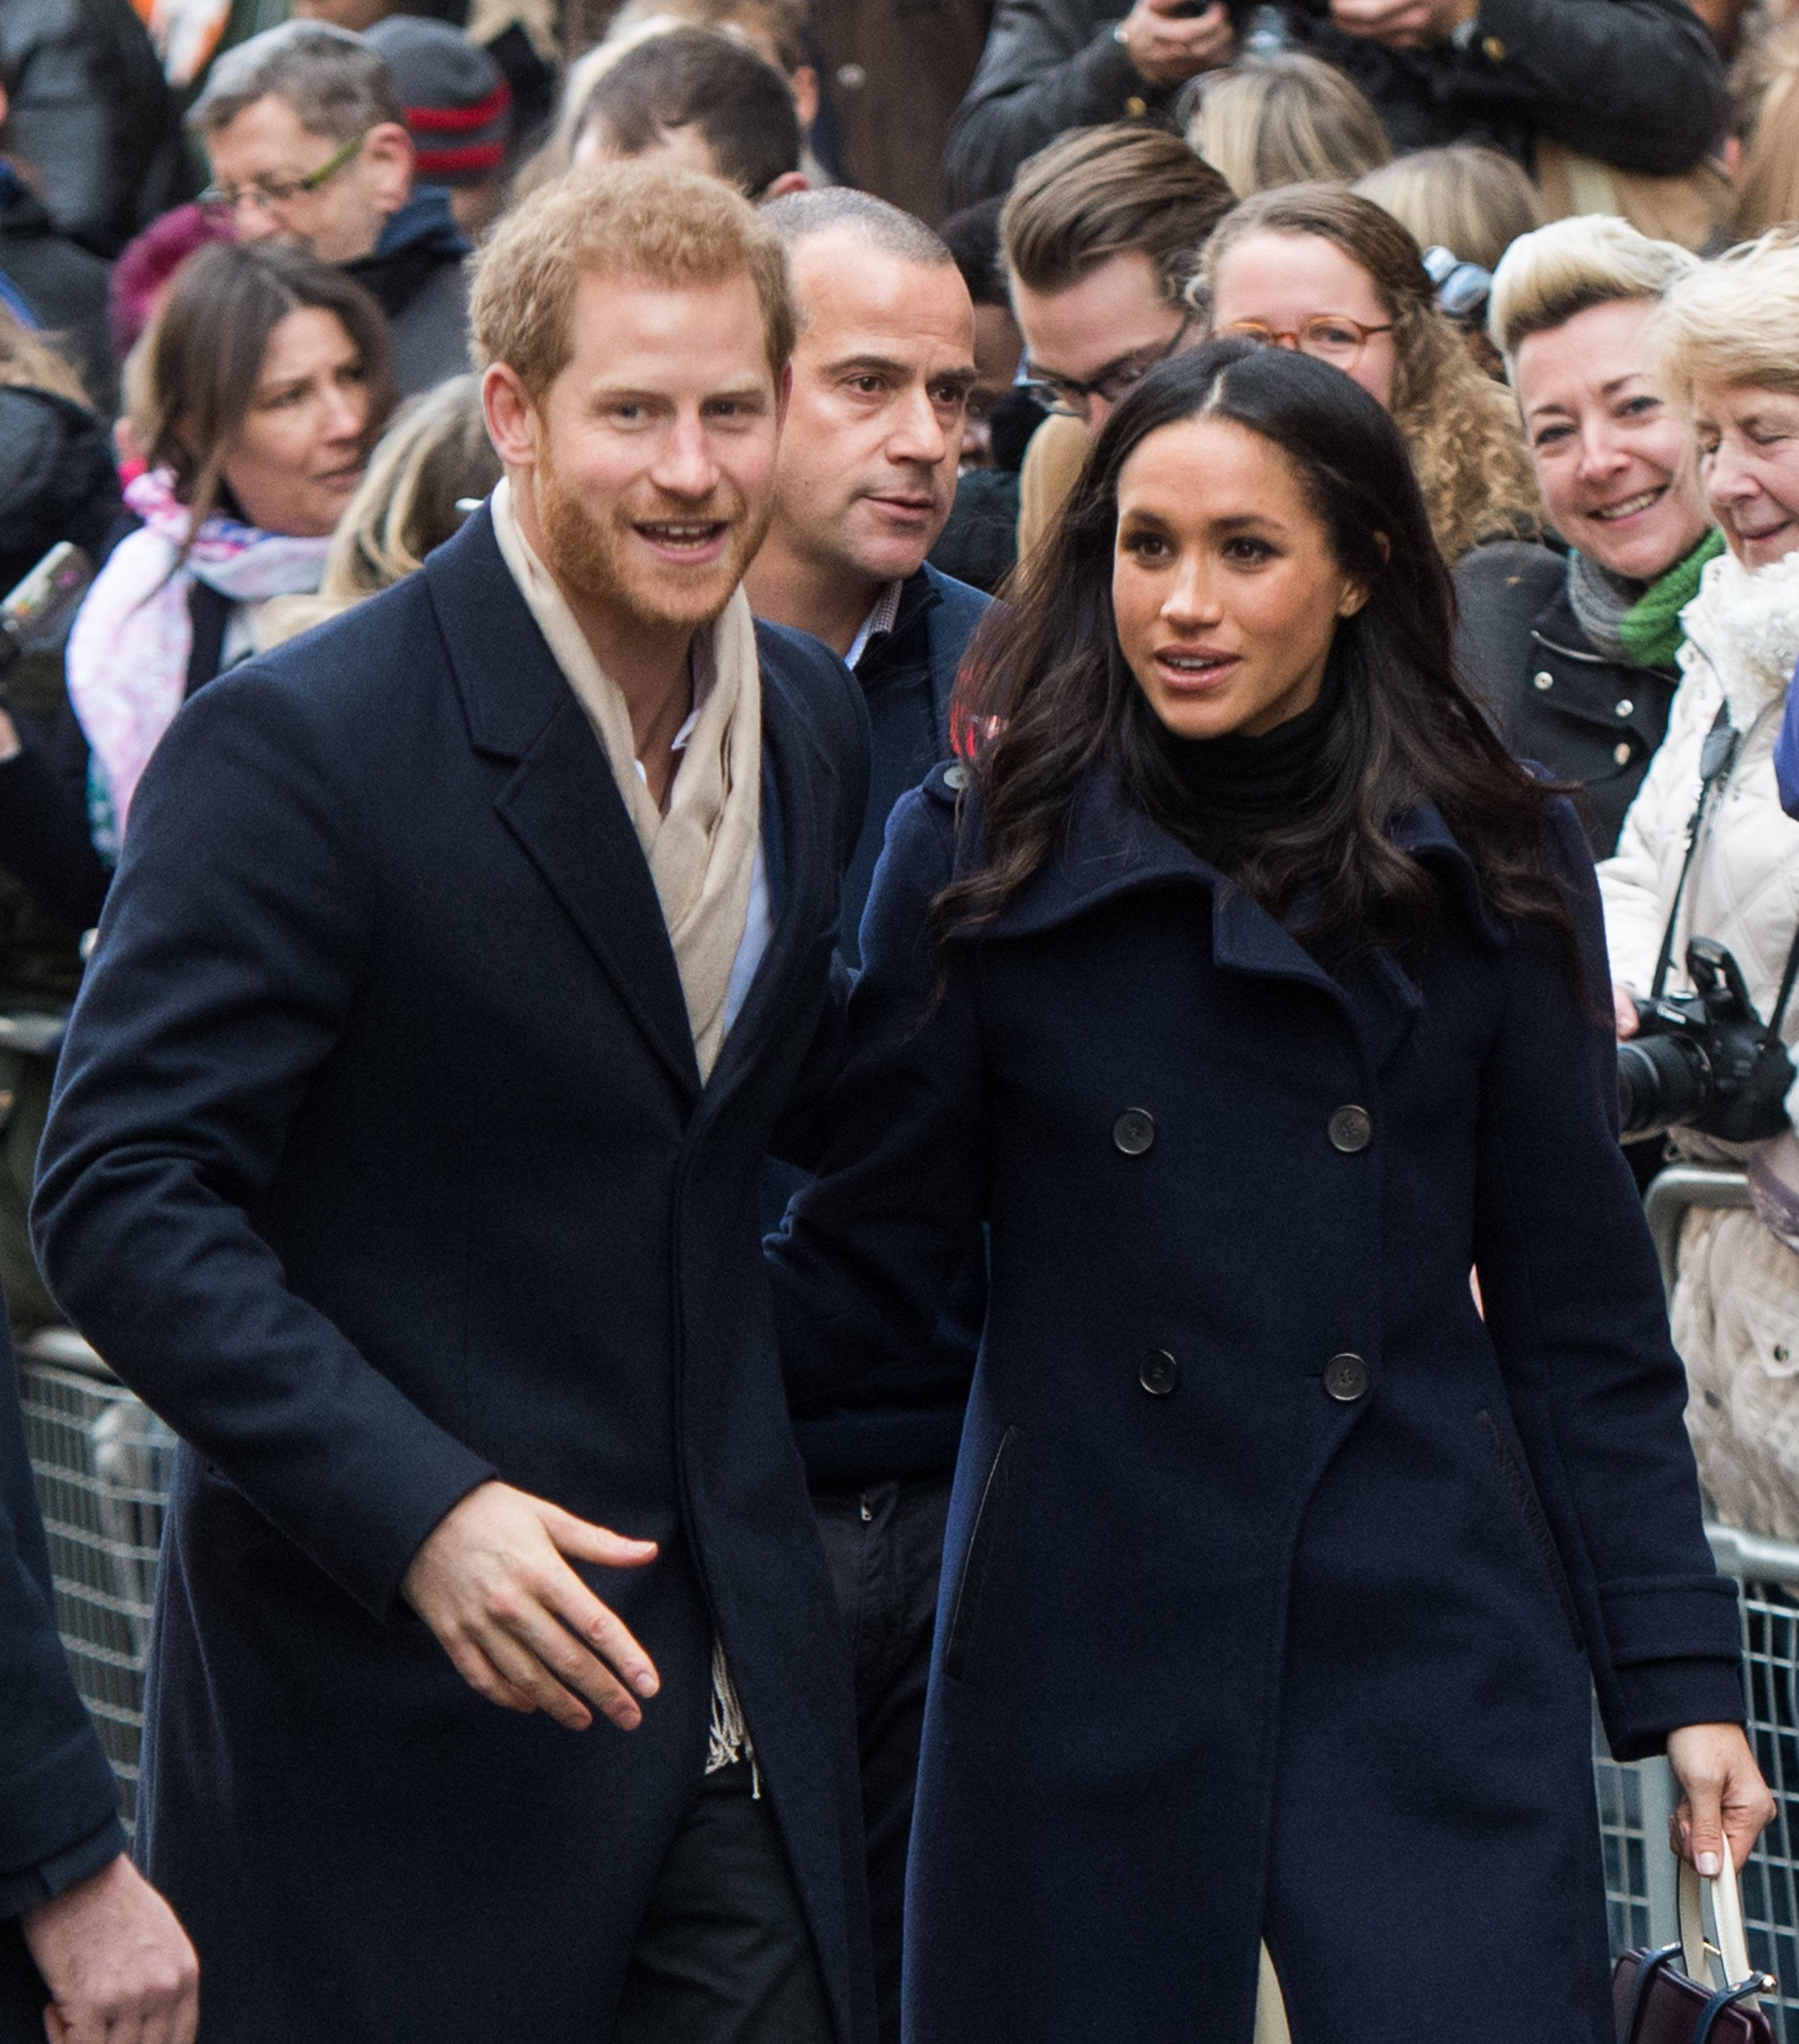 Prince Charles Will Walk Meghan Markle Down The Aisle At The Royal